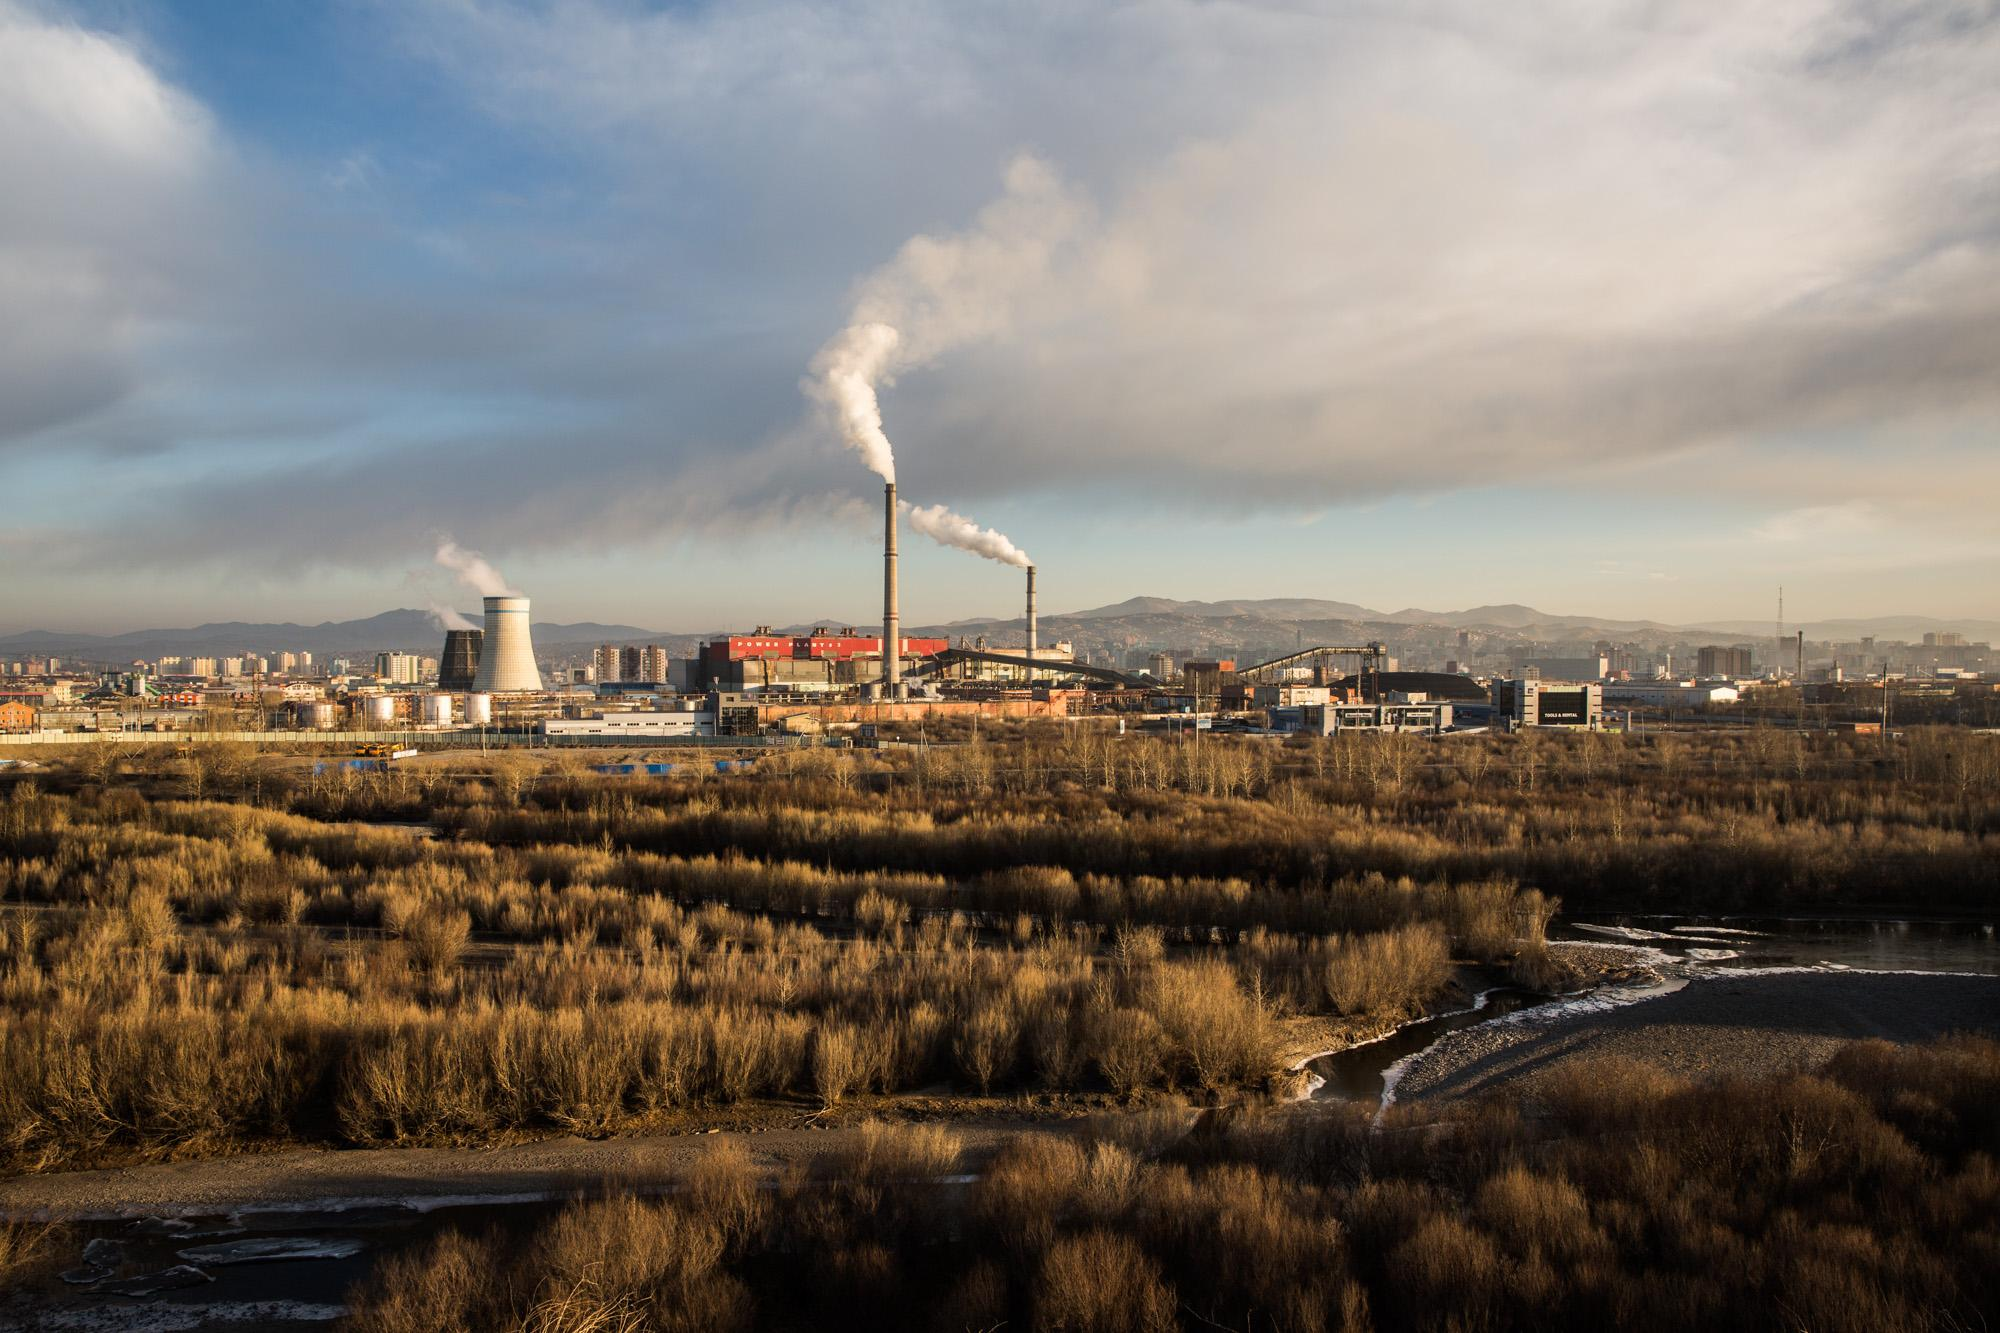 Smoke stacks from a coal-fueled power plant are seen on the edge of Ulaanbataar, Mongolia. During the winter months, when coal usage is at an all time high, including in private homes, the air quality becomes dangerous. Many people, children especially, are diagnosed with pneumonia.